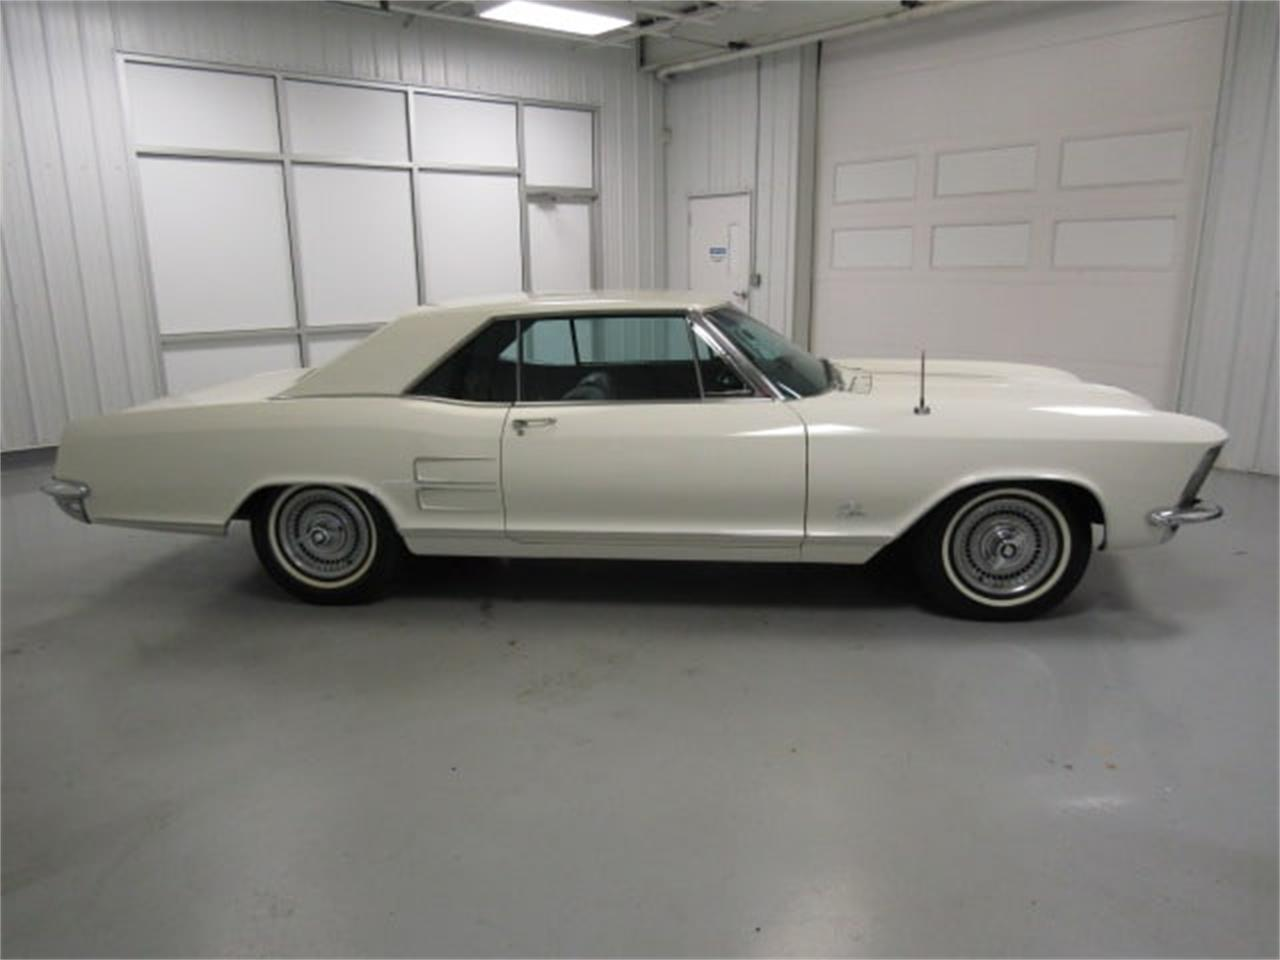 Large Picture of Classic '63 Buick Riviera located in Christiansburg Virginia - $38,910.00 - MJSM